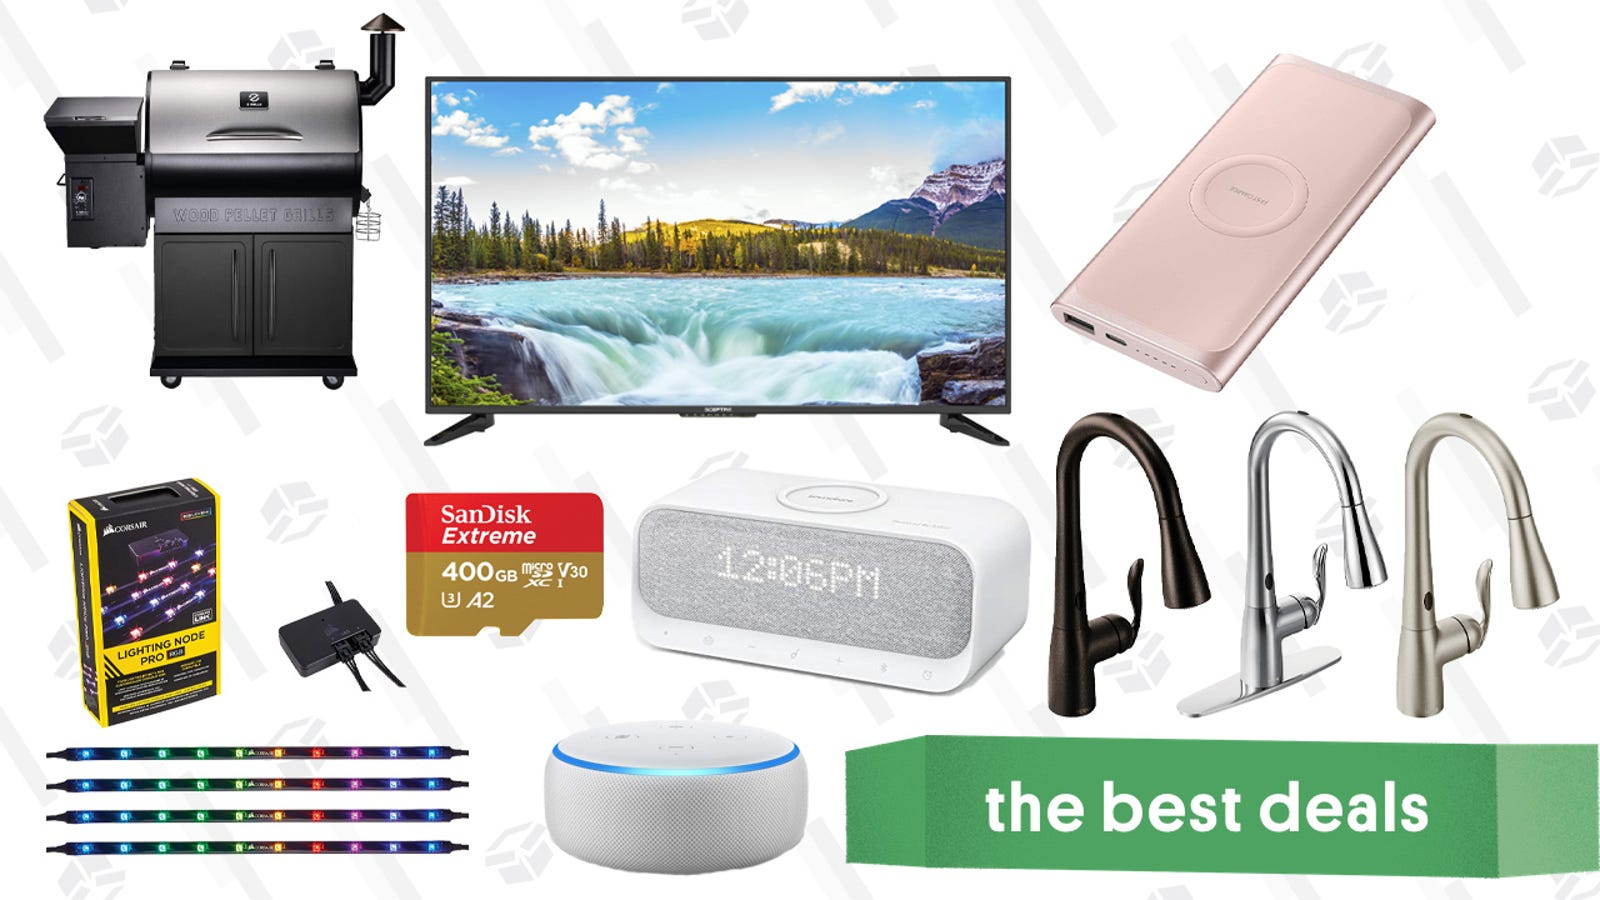 QnA VBage Wednesday's Best Deals: Discounted Audible Membership, Pellet Grill, Moen Kitchen Faucets, and More